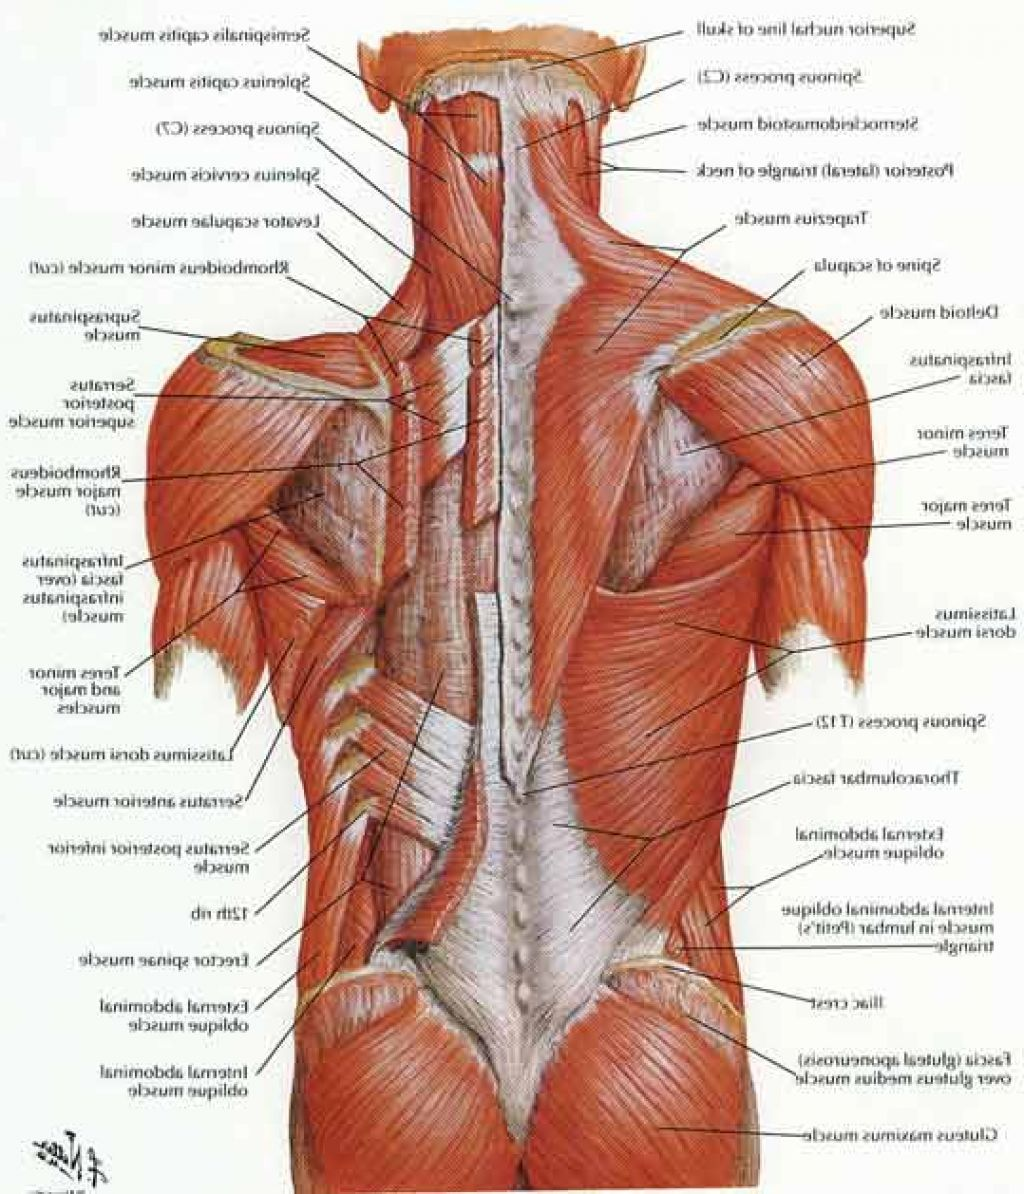 Lower Back Muscles | ANATOMY OF BACK MUSCLES 1 | Pinterest | Anatomía